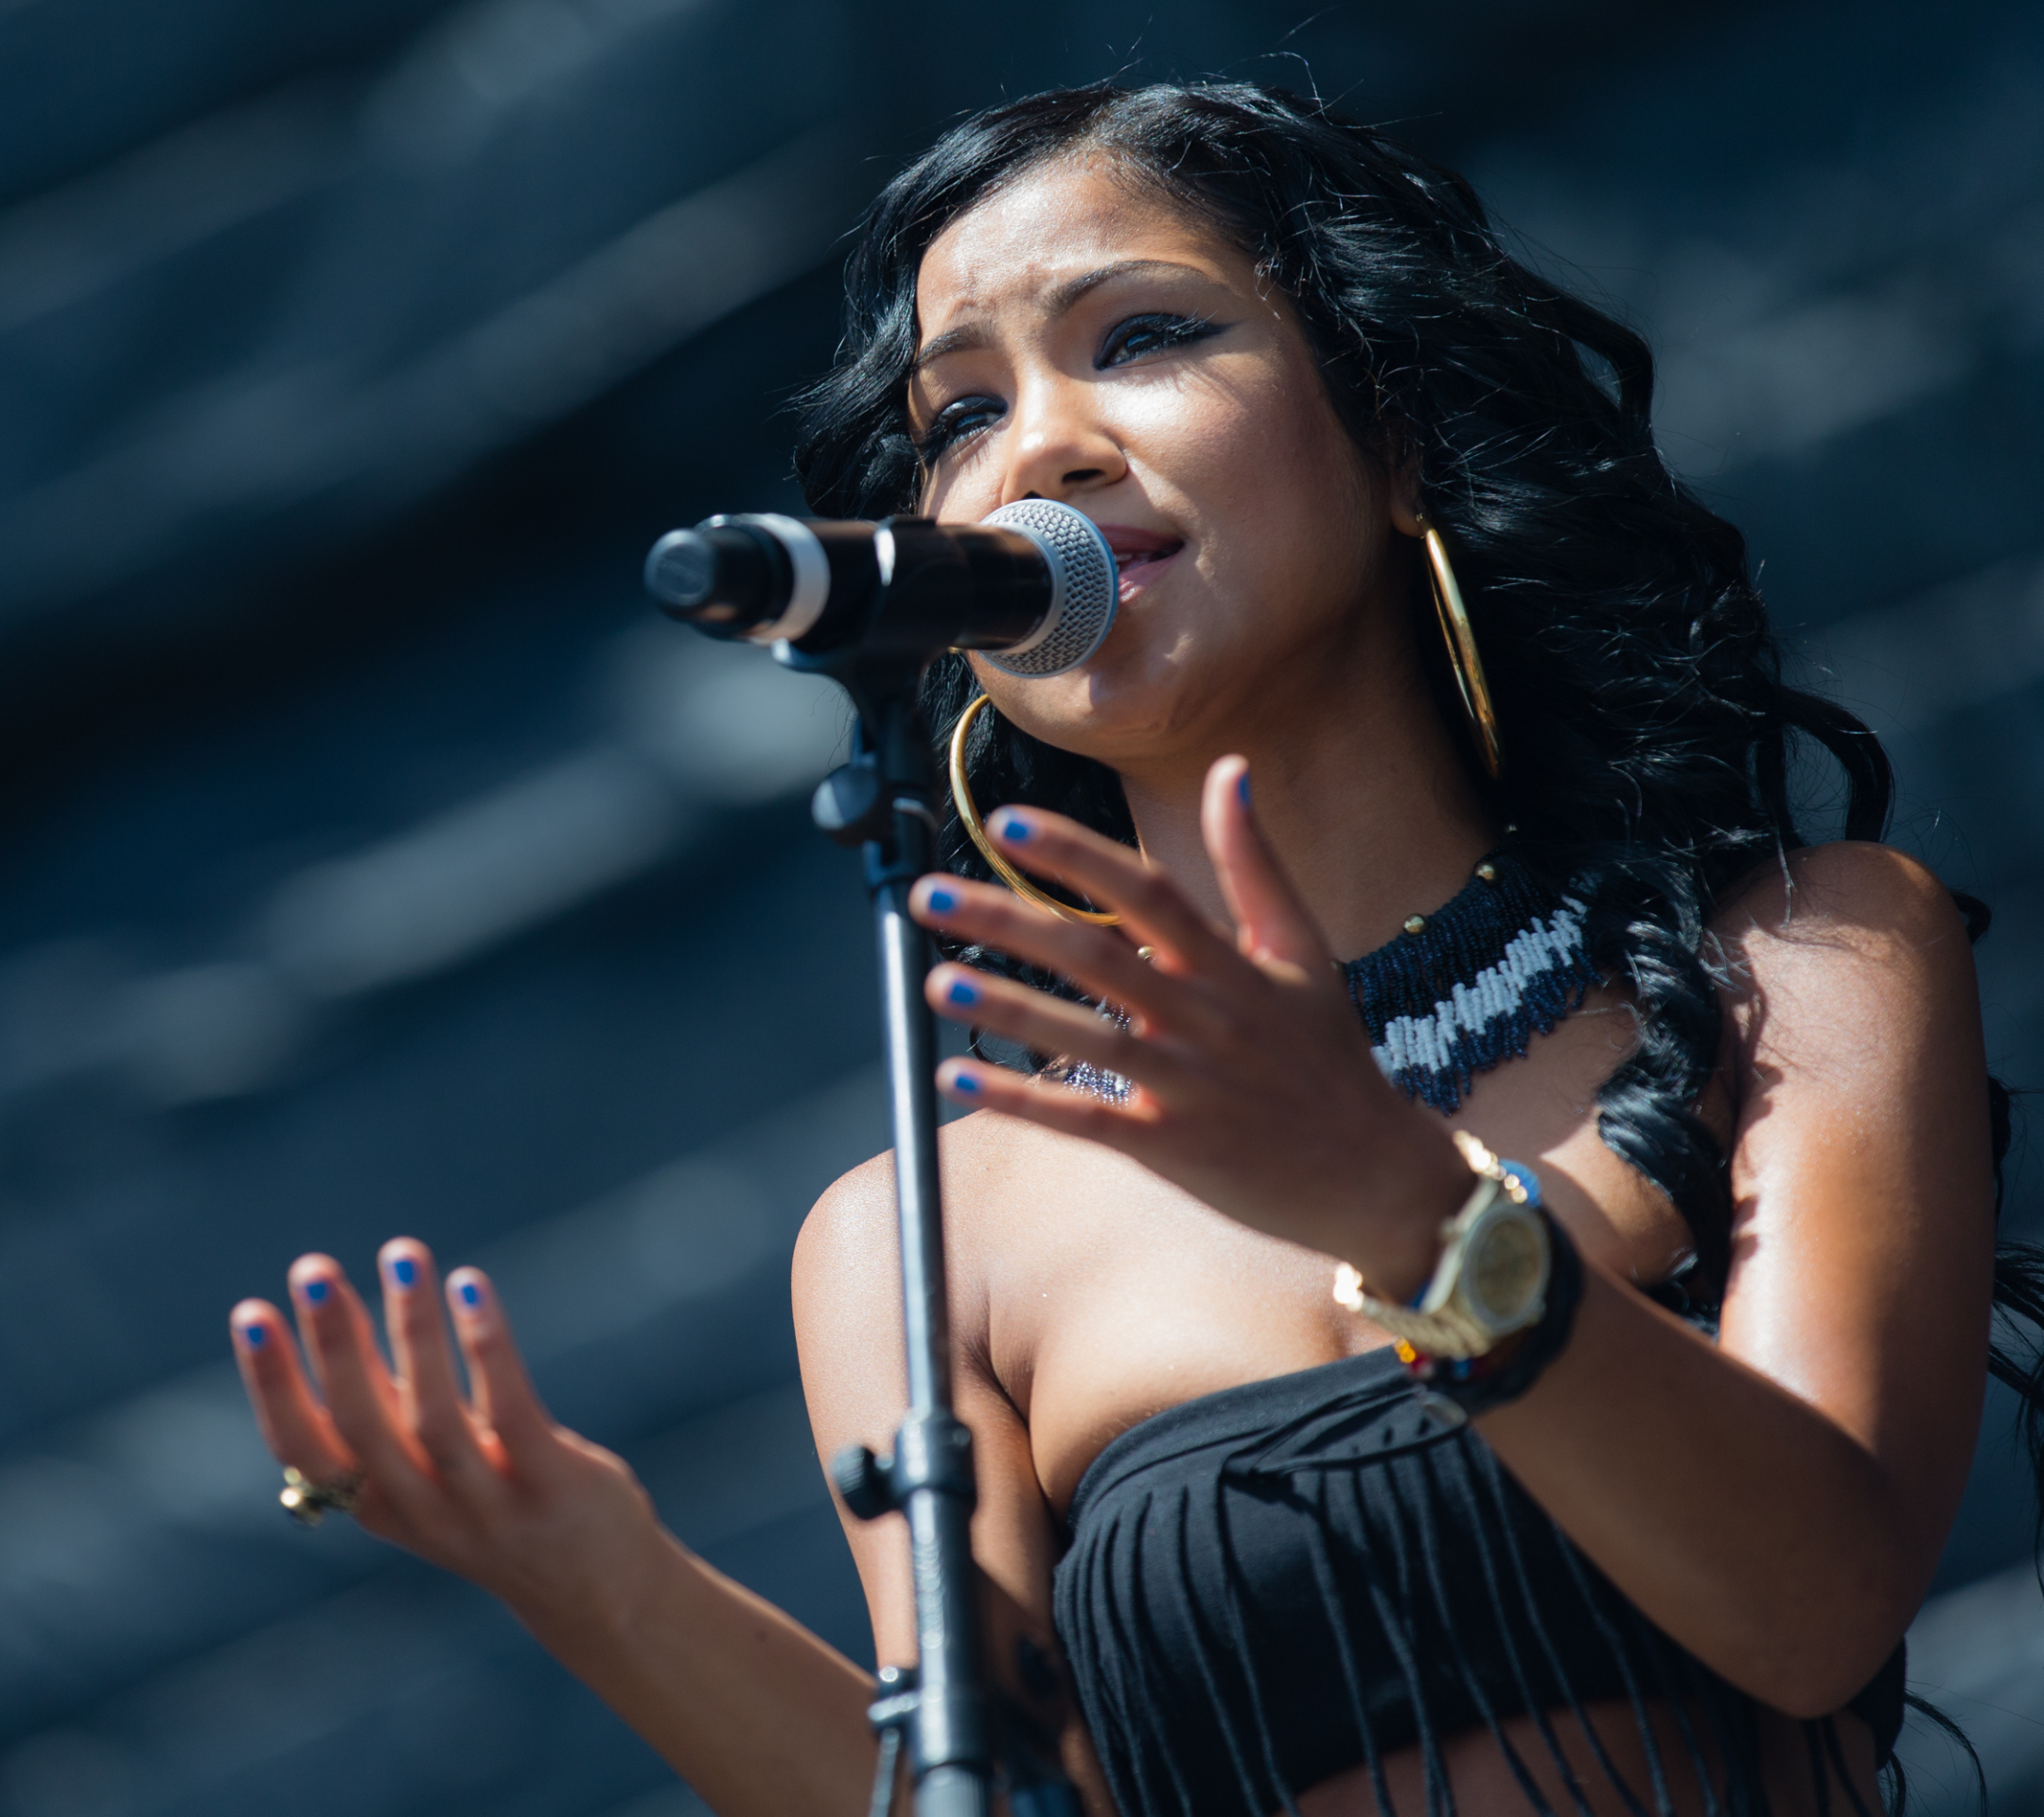 Music Jhene Aiko 2160x1920 Wallpaper Id 665326 Mobile Abyss